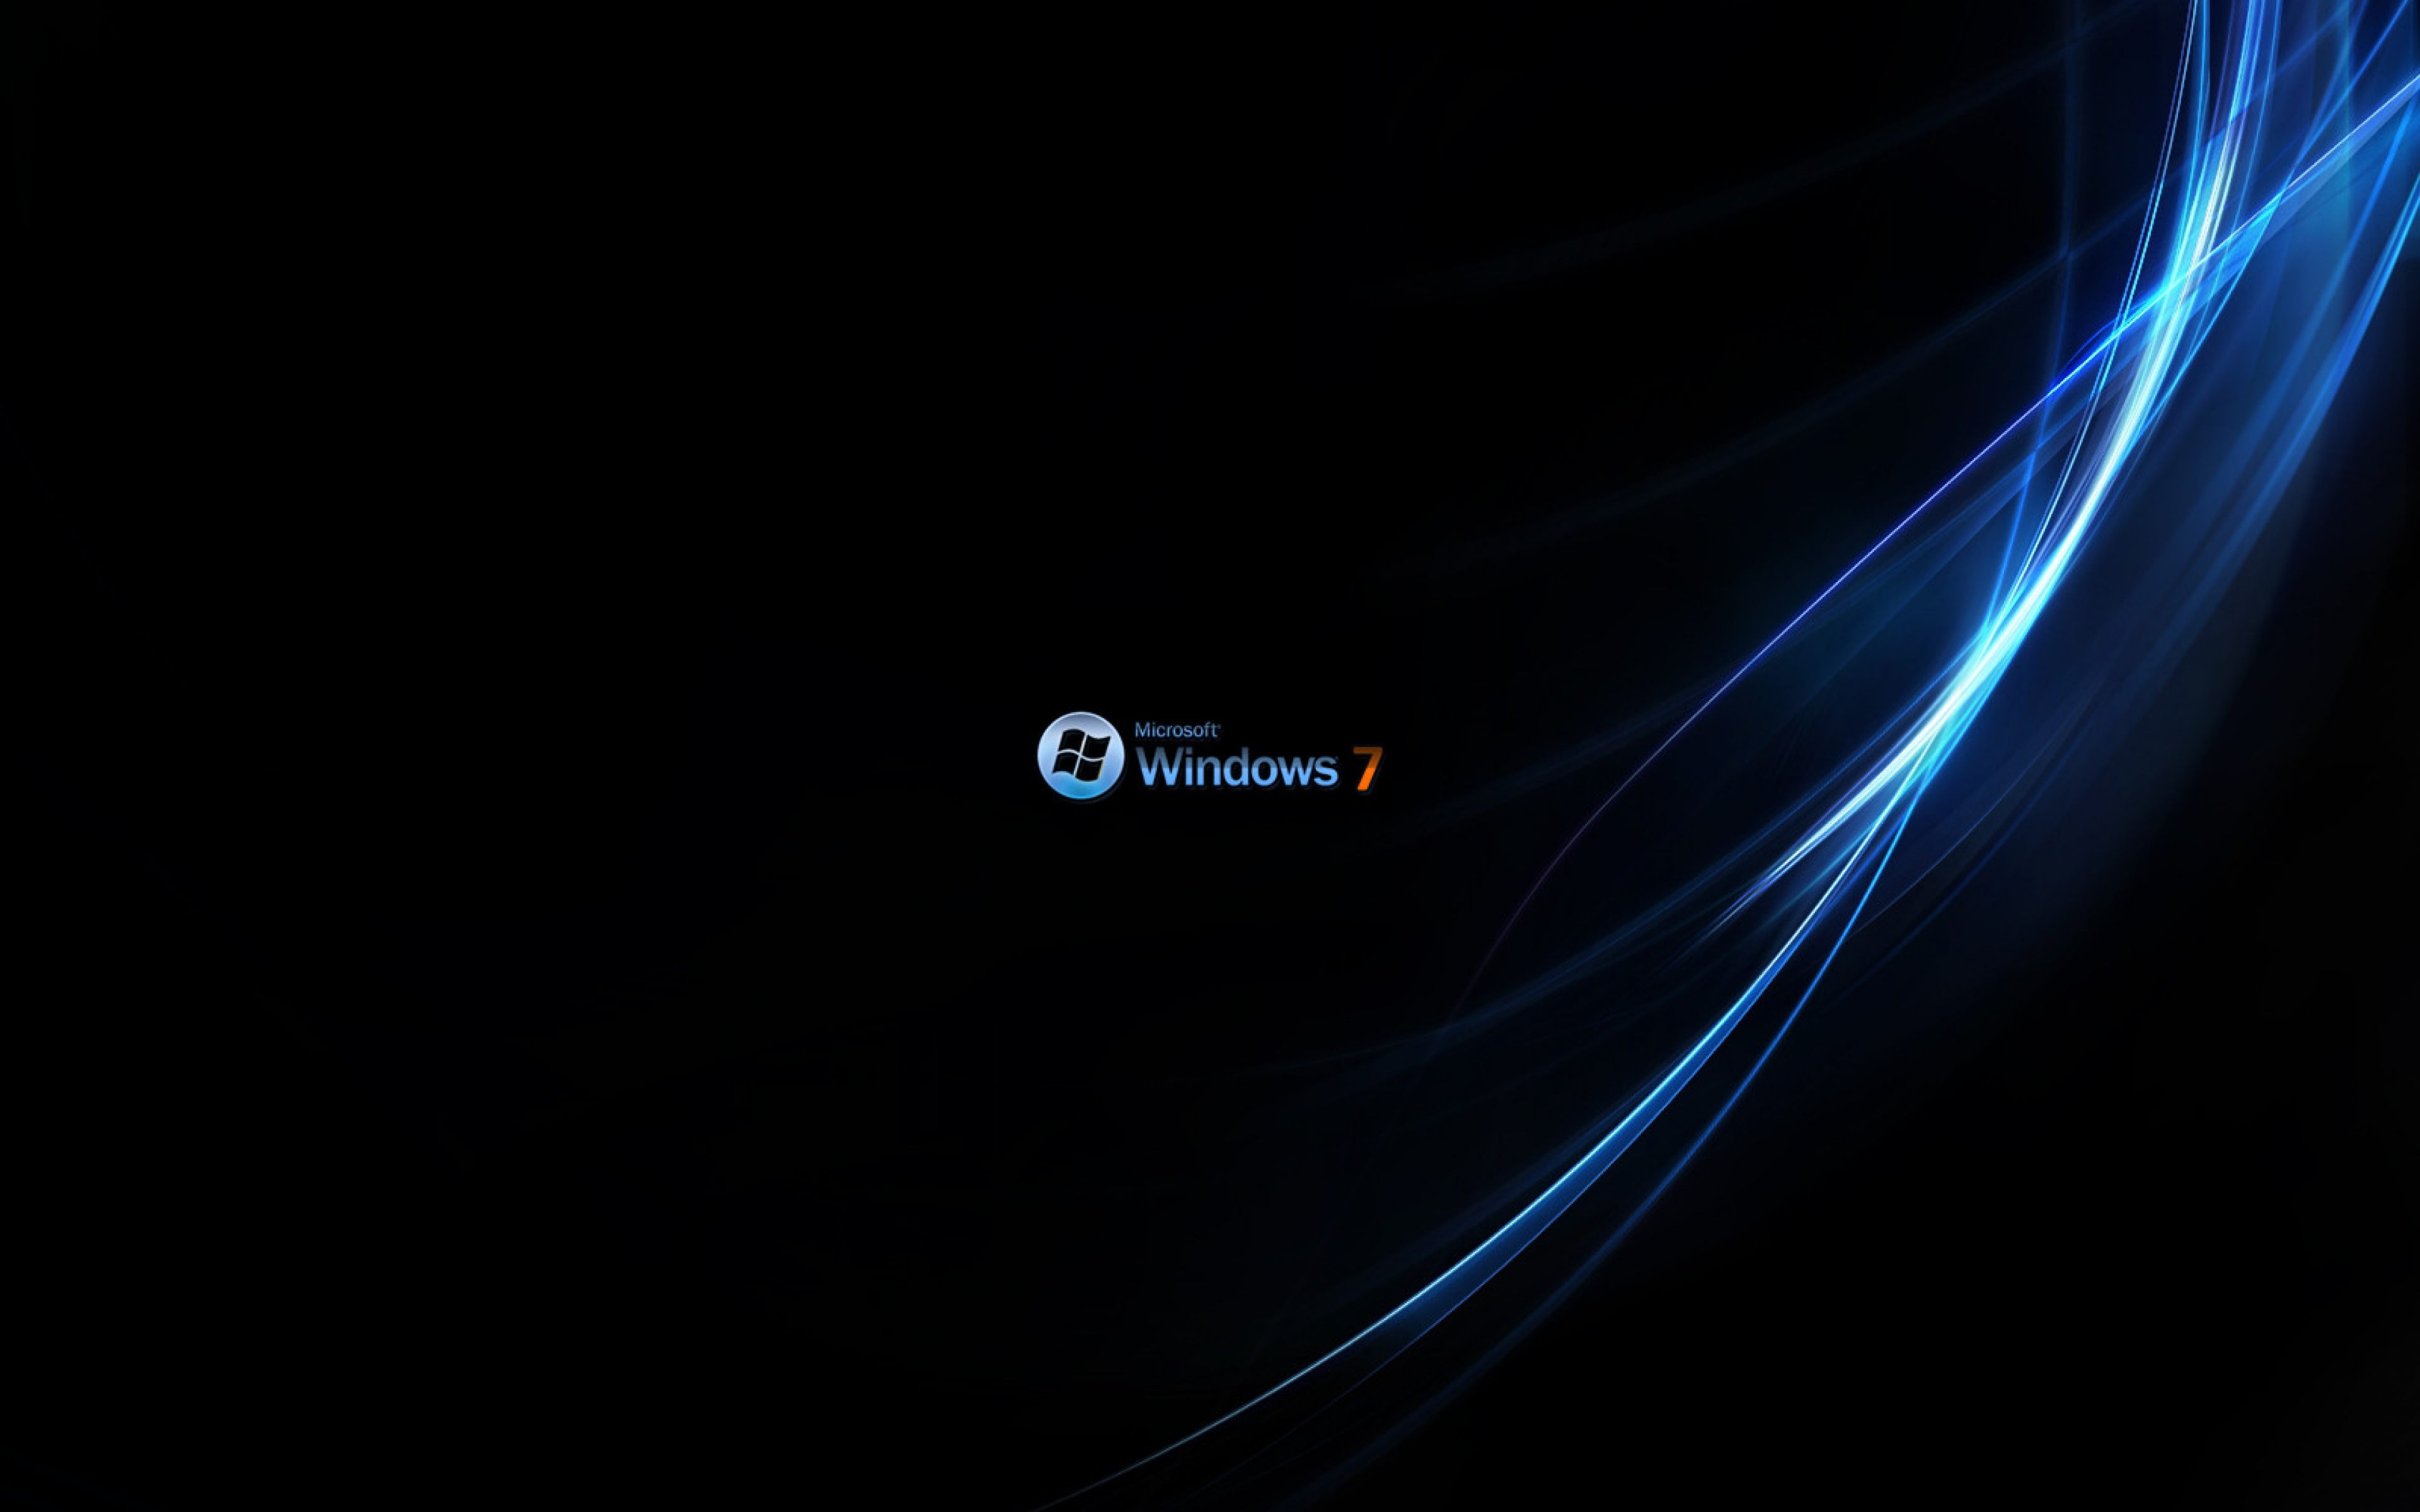 microsoft windows wallpapers by gifteddeviant - photo #15